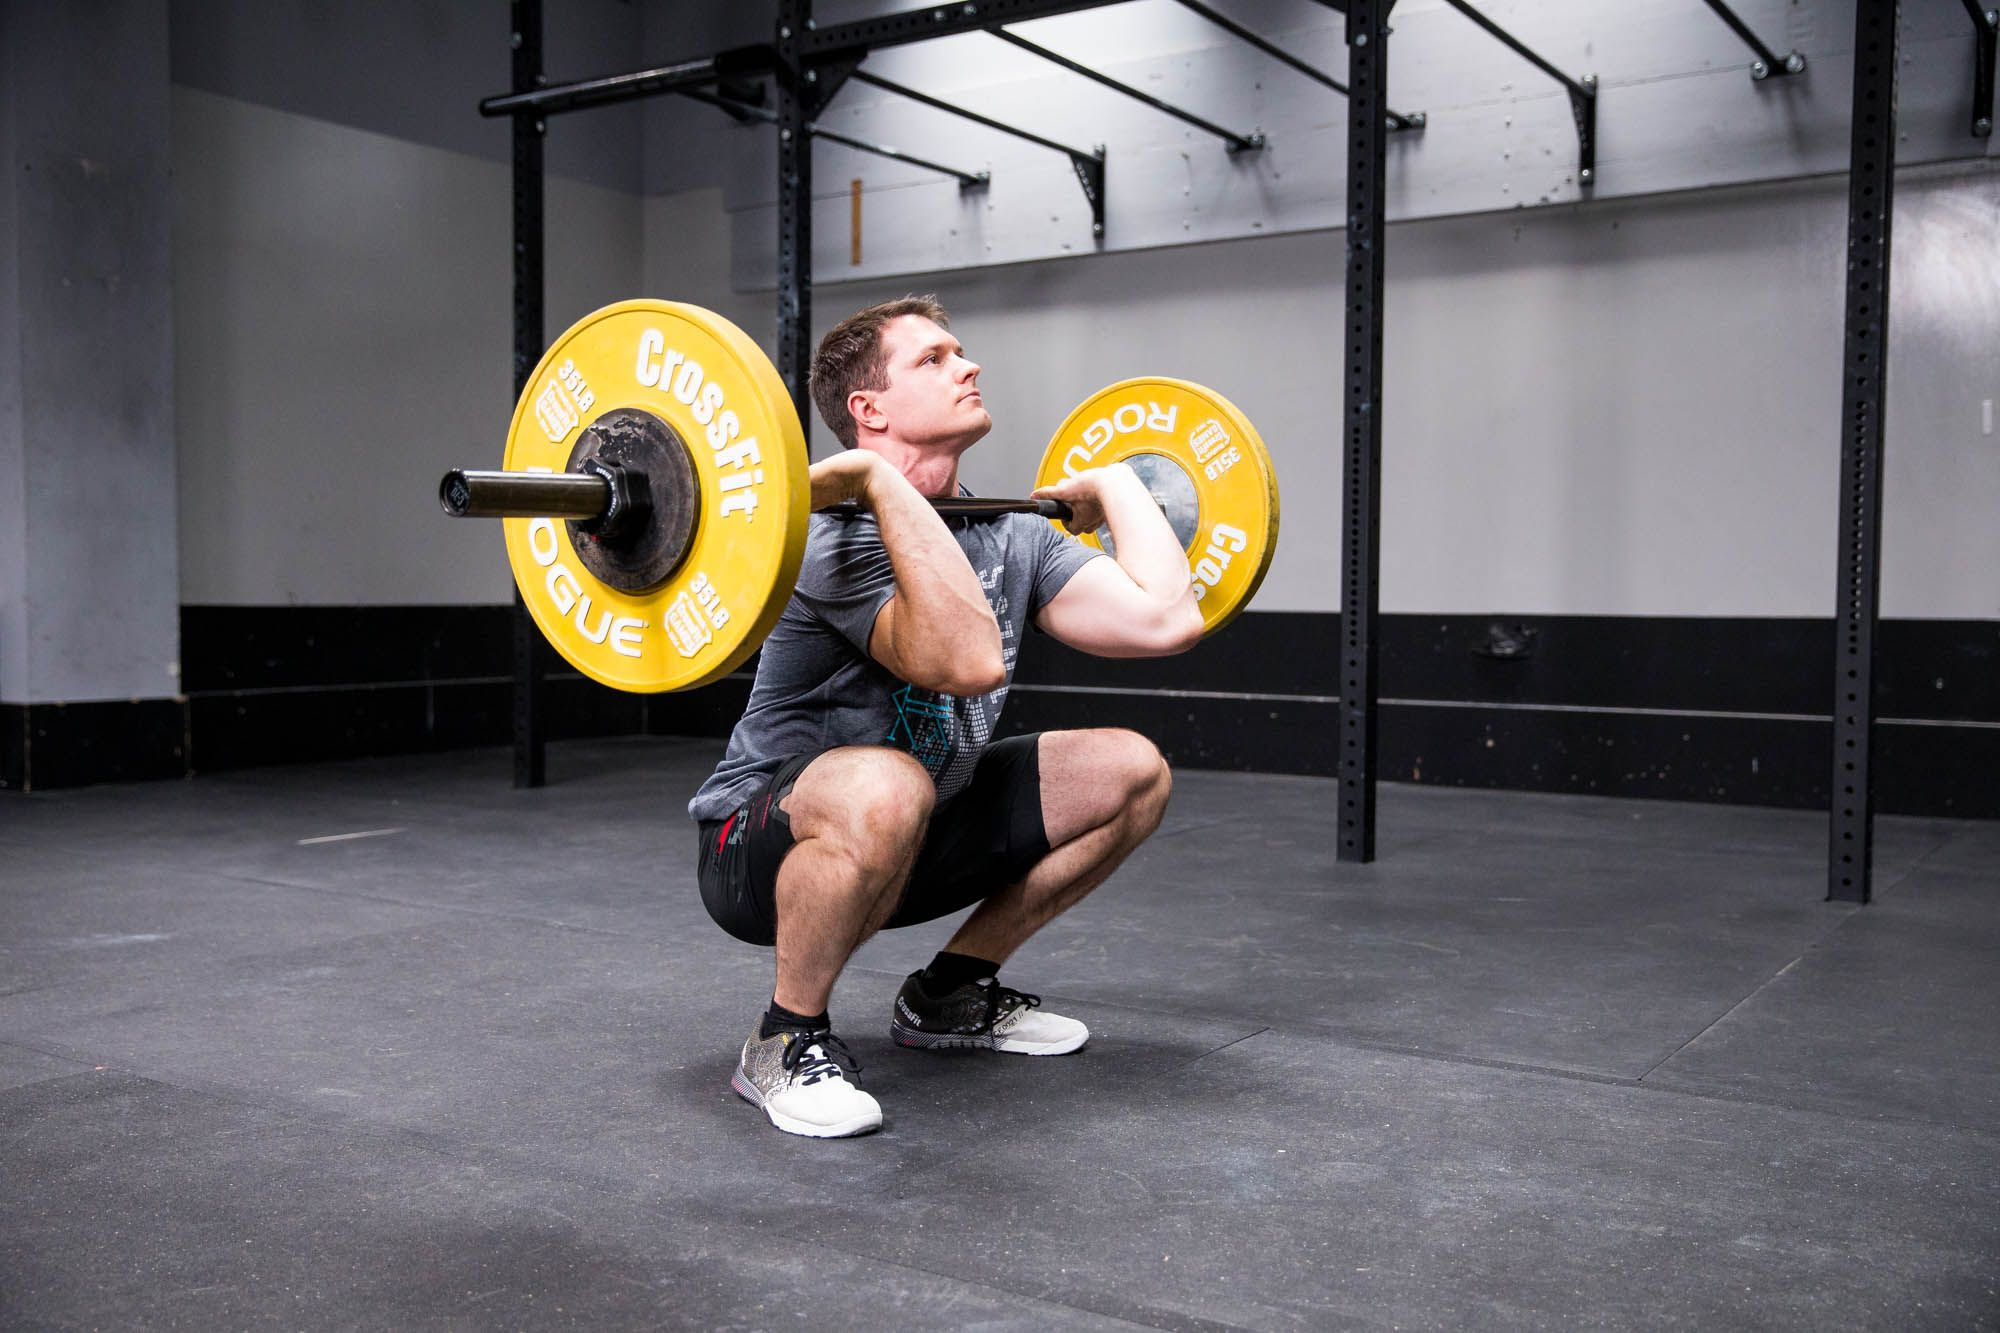 2015 Regional Events Crossfit Workouts Workout Athlete